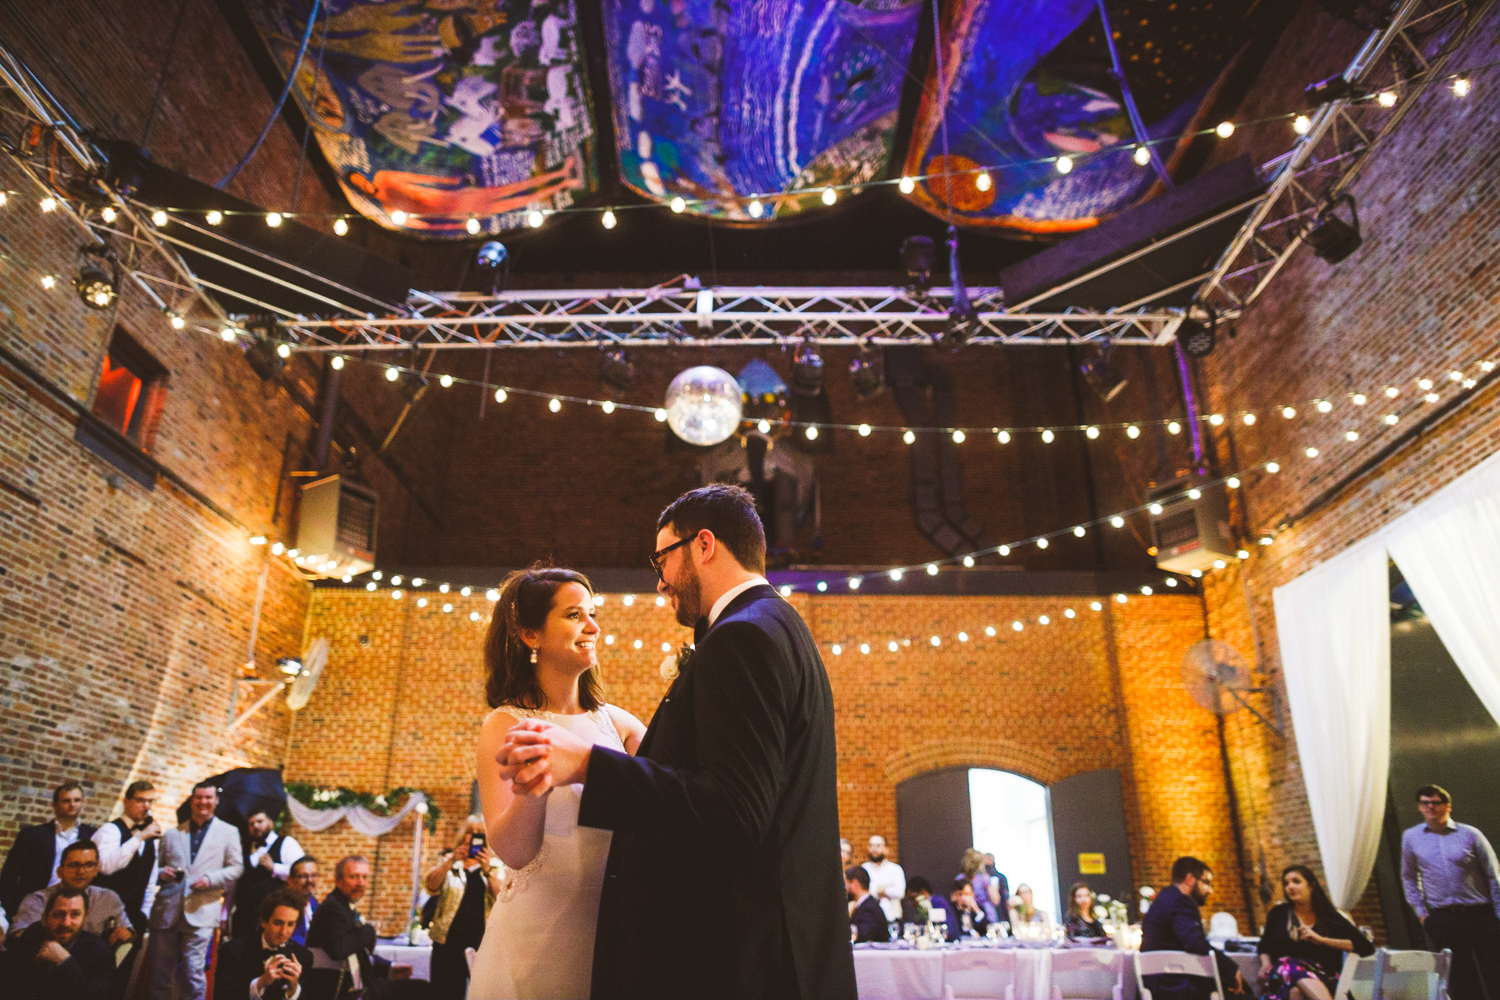 048 - bride and groom first dance at the American Visionary Arts Museum in Baltimore Maryland.jpg